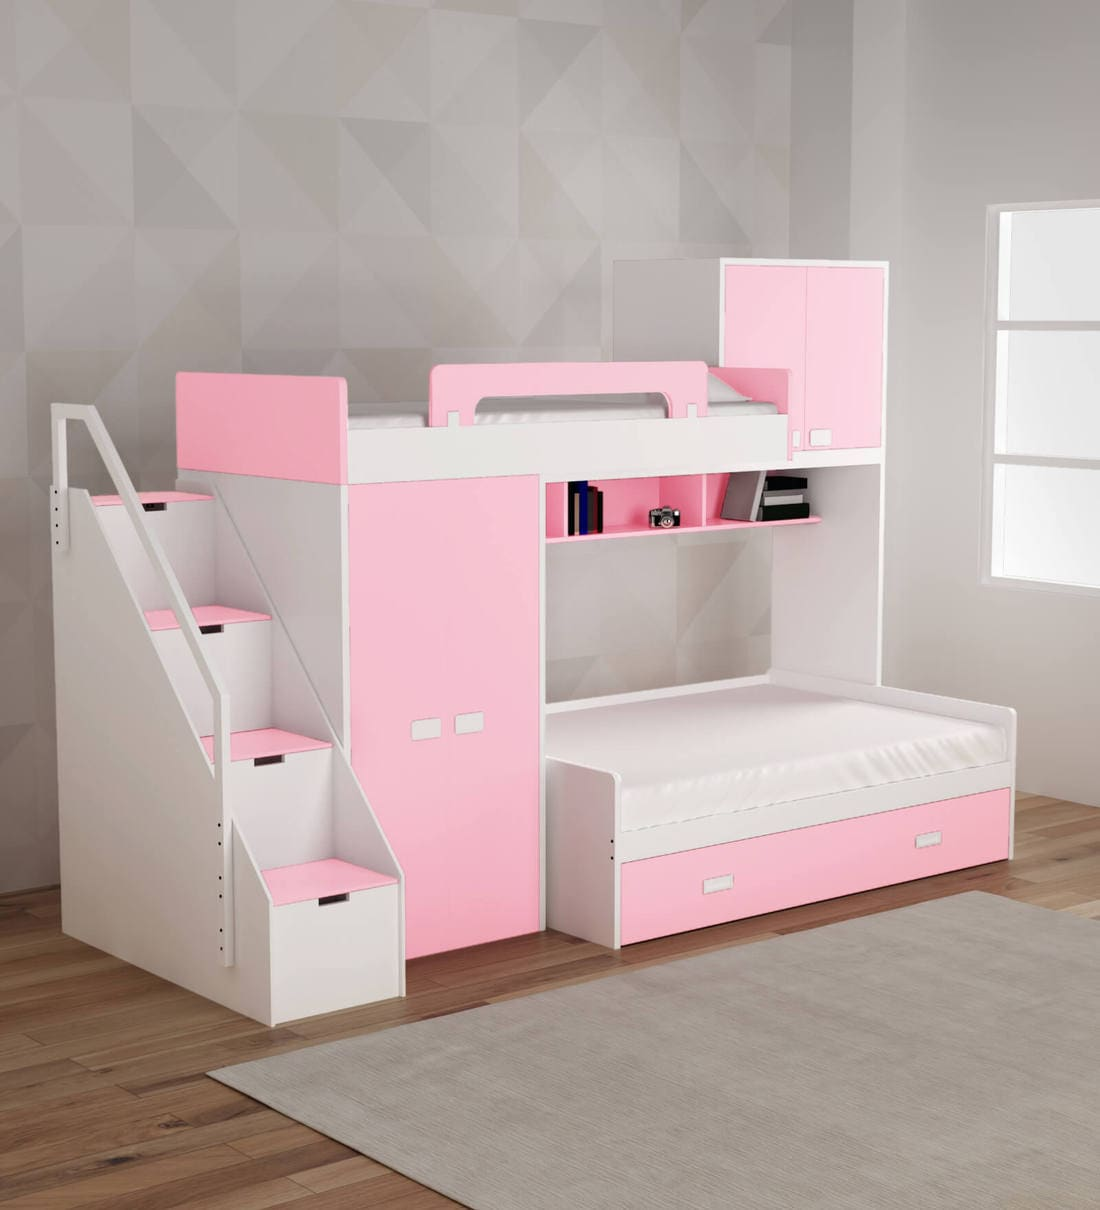 Picture of: Buy Play Kids Bunk Bed In Pink Colour By Alex Daisy Online Bed Units Kids Furniture Kids Furniture Pepperfry Product